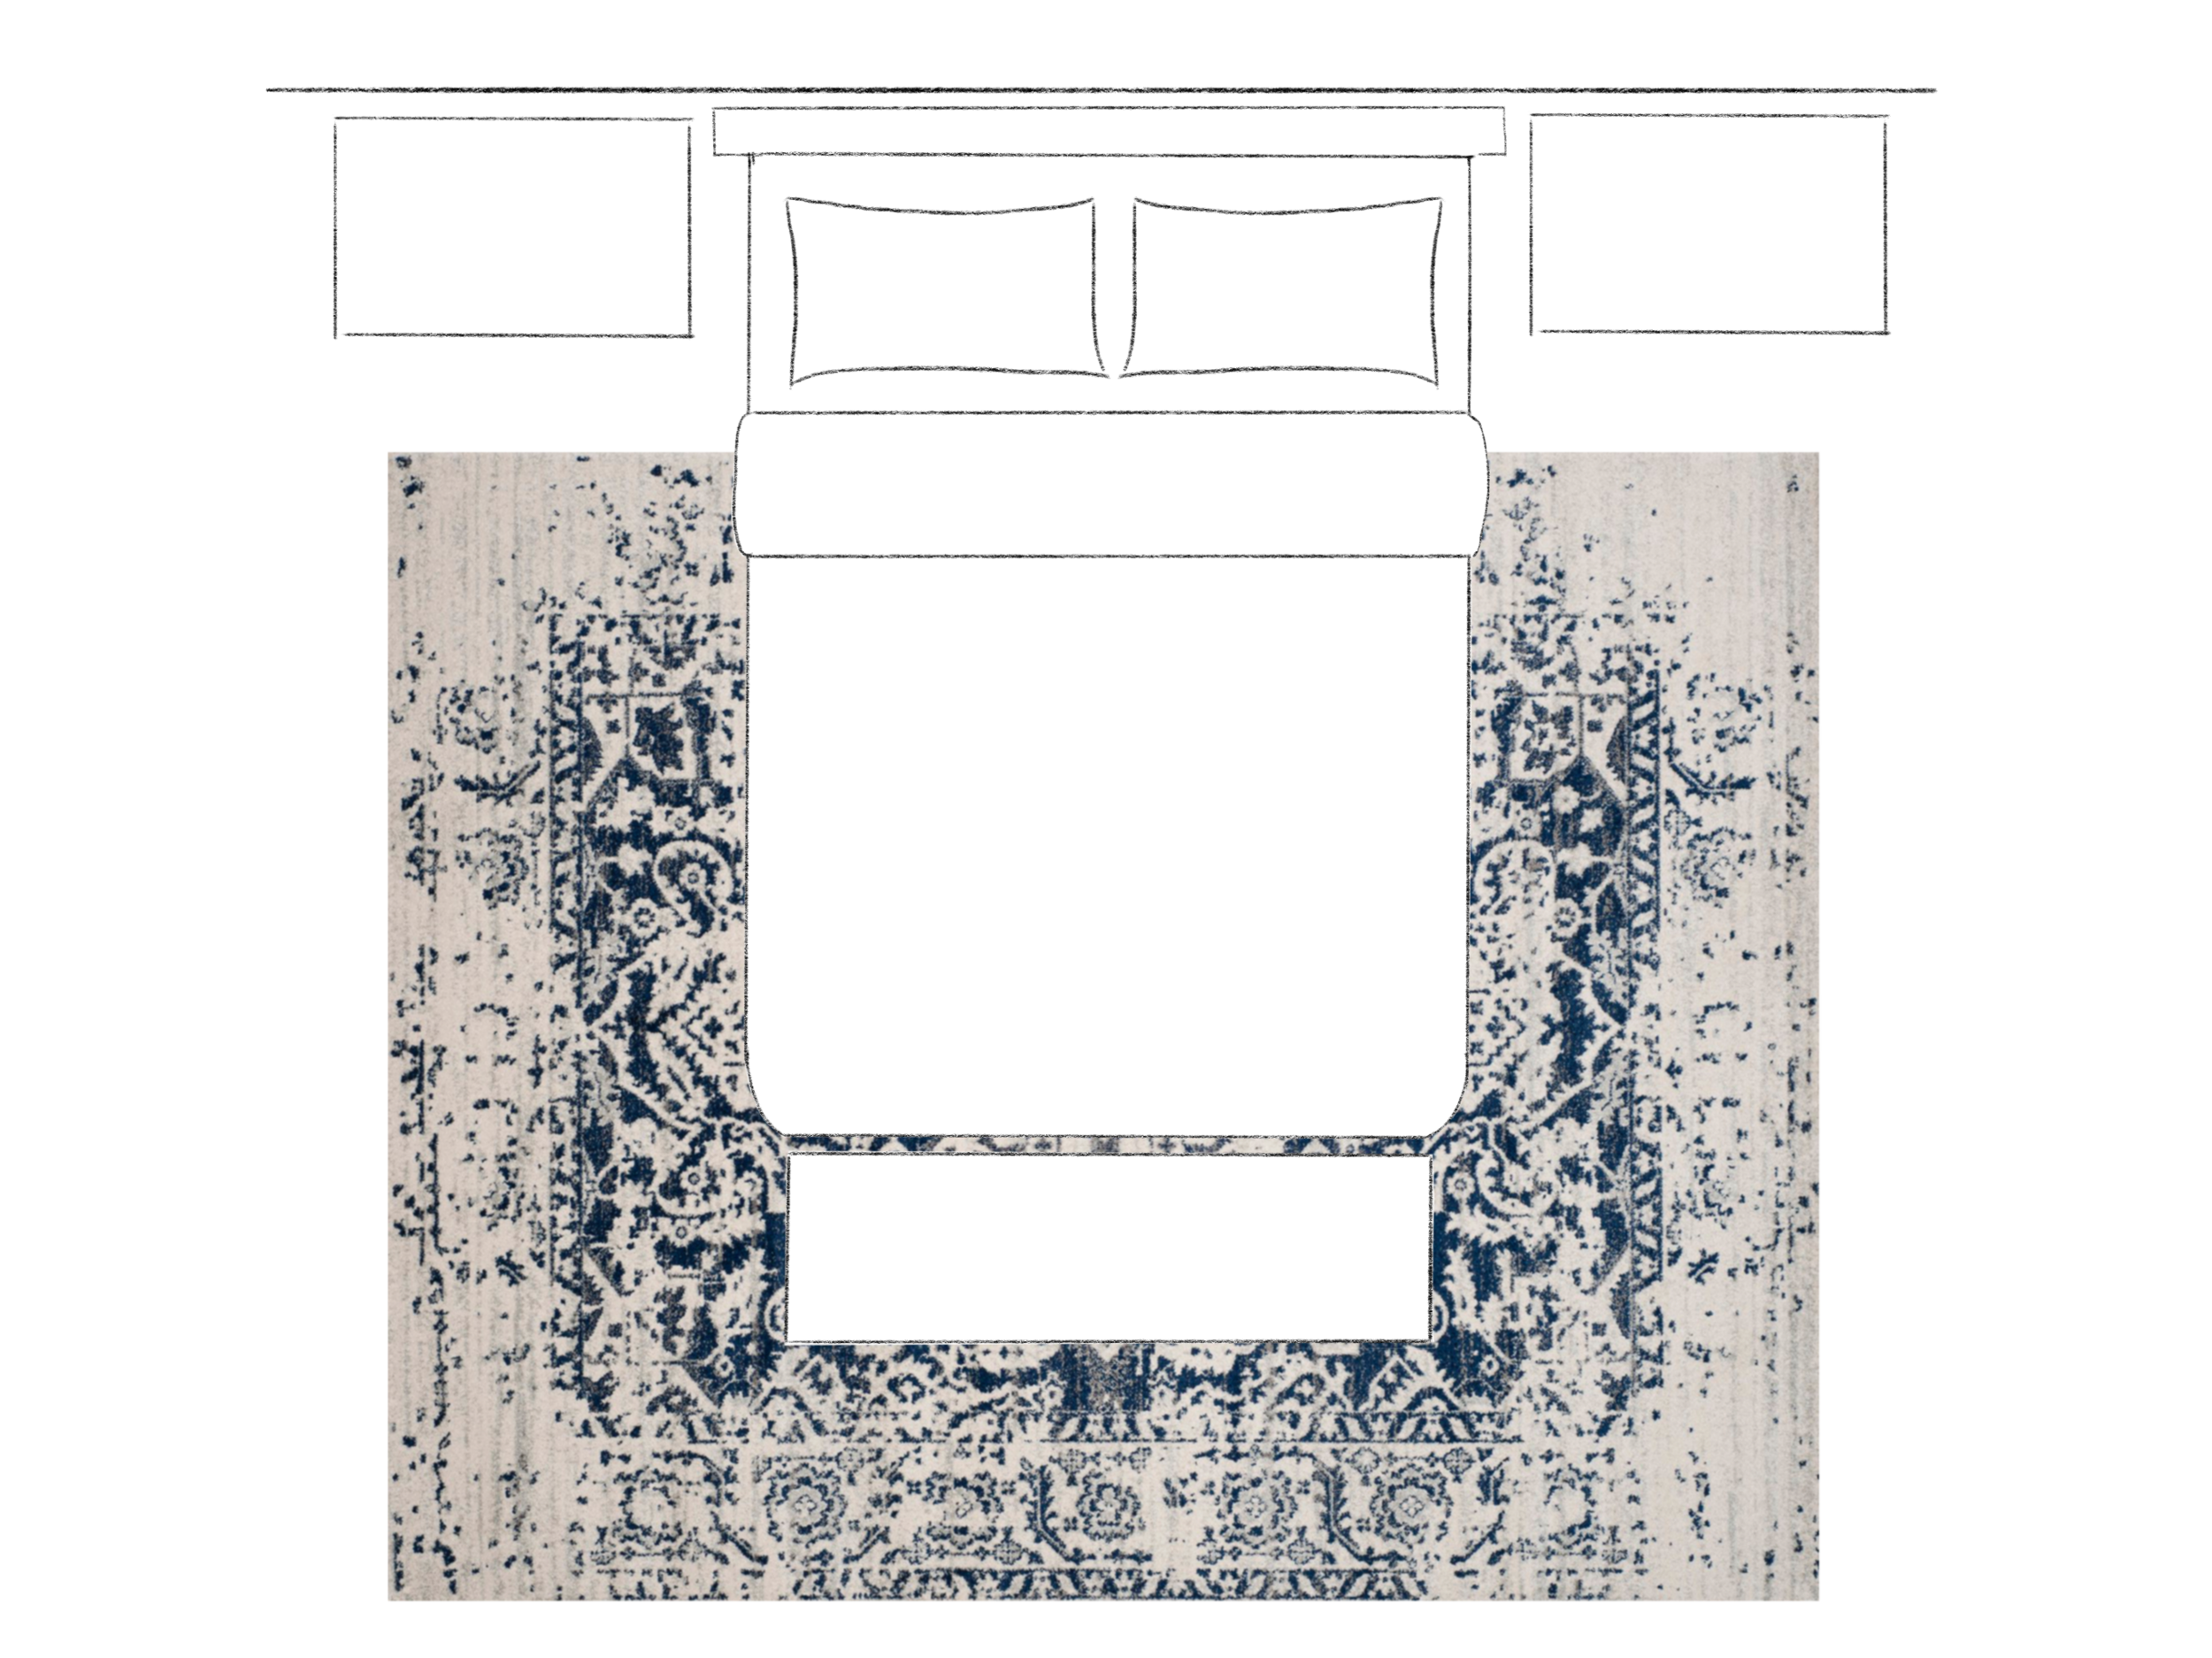 How to Choose the Right Size Area Rug - 2/3 On Layout. Asha-Maia Design | Interiors + Events, Alexandria, VA 22302